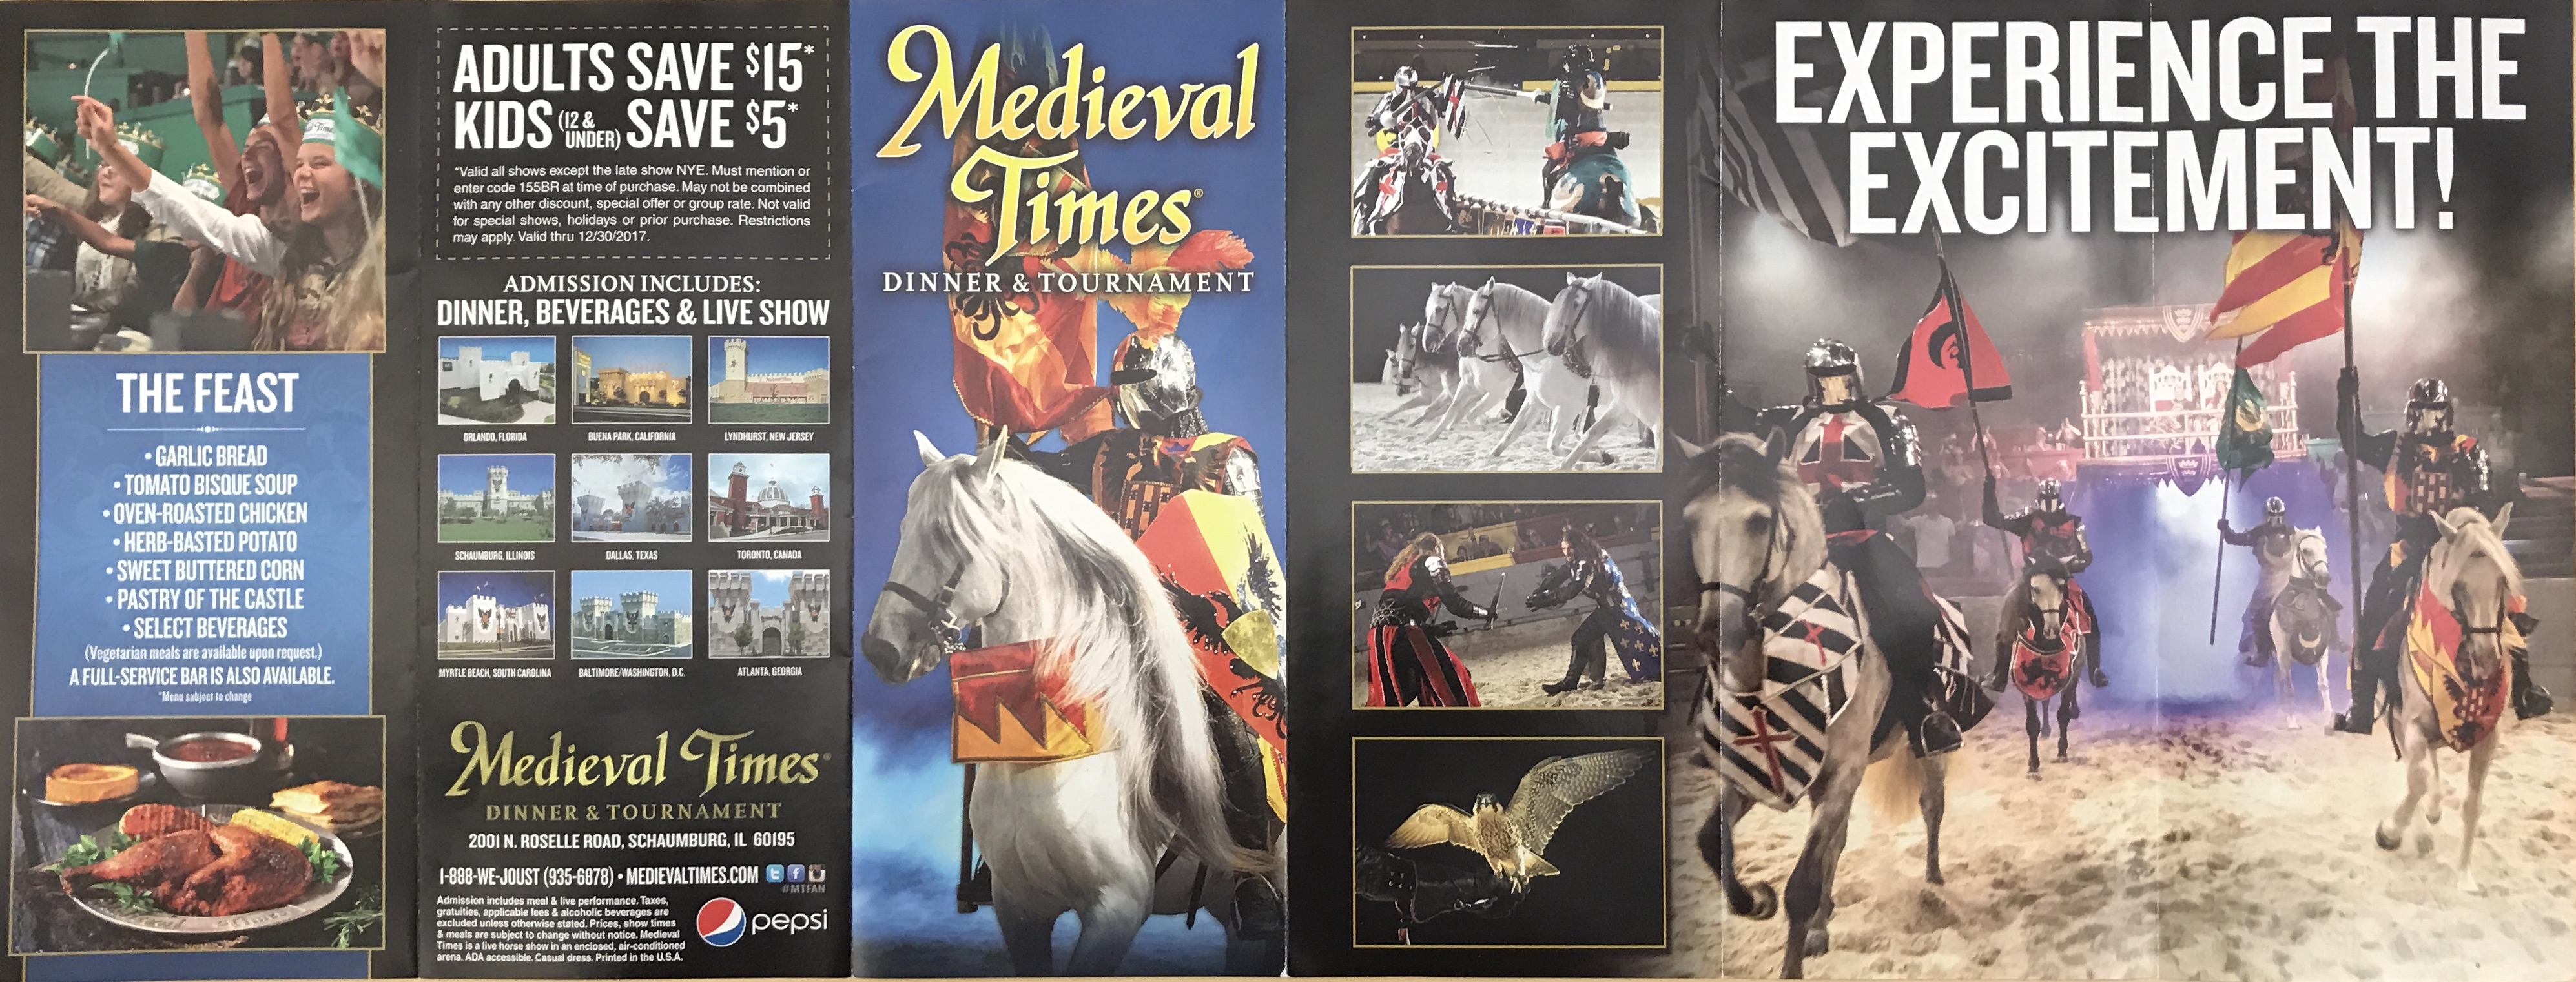 Discover Chicago: Medieval Times Information